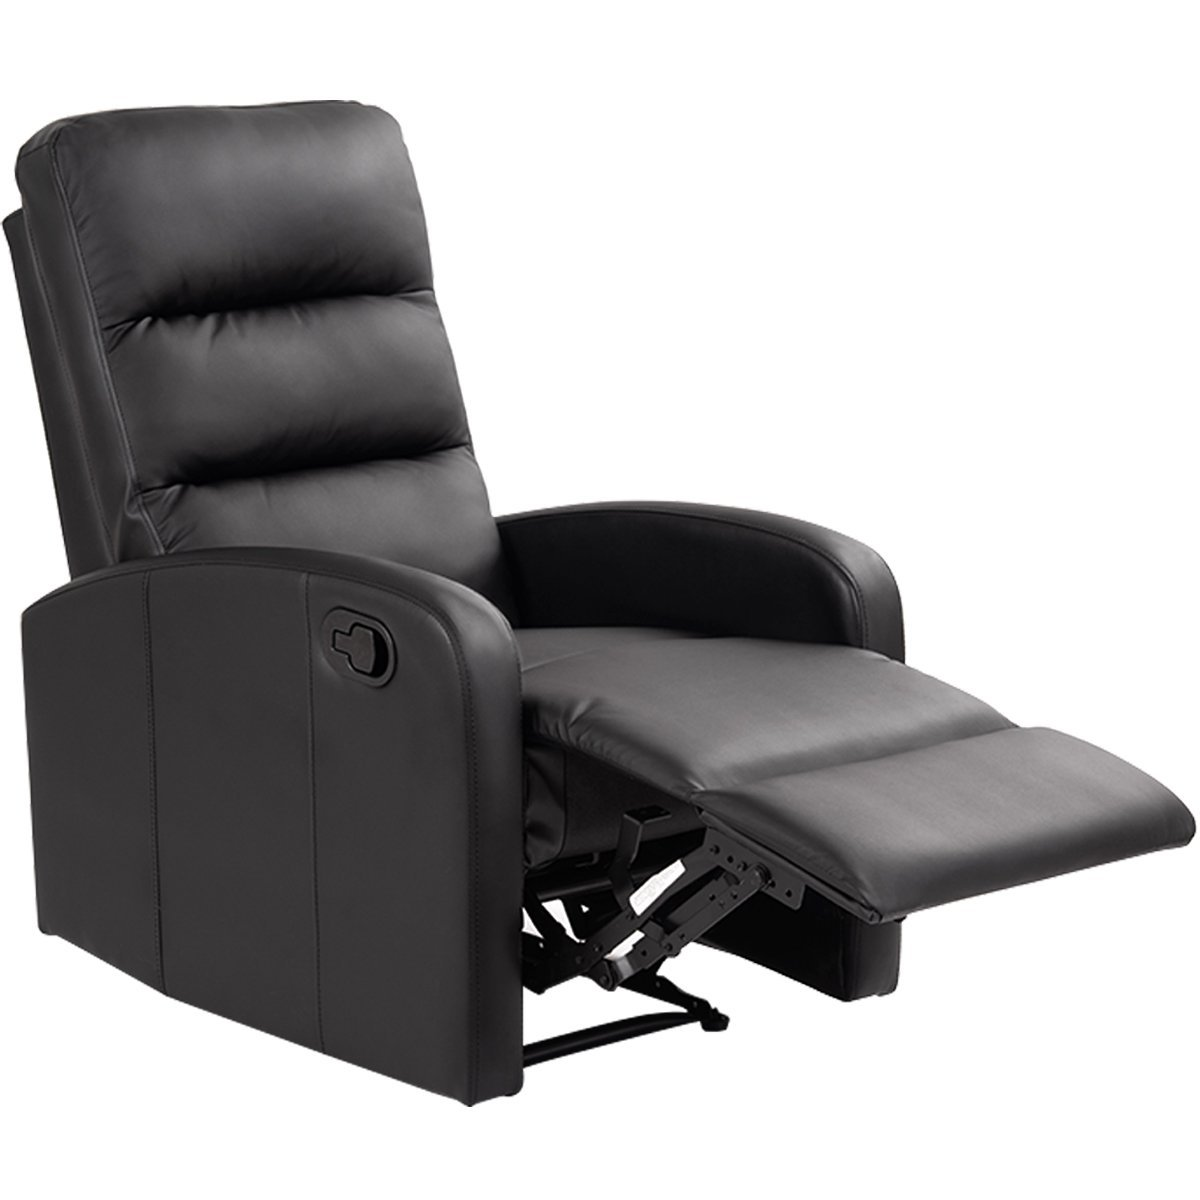 Giantex Manual Recliner Chair Black Lounger Leather Sofa Seat Home Theater (Style 1) HW51431